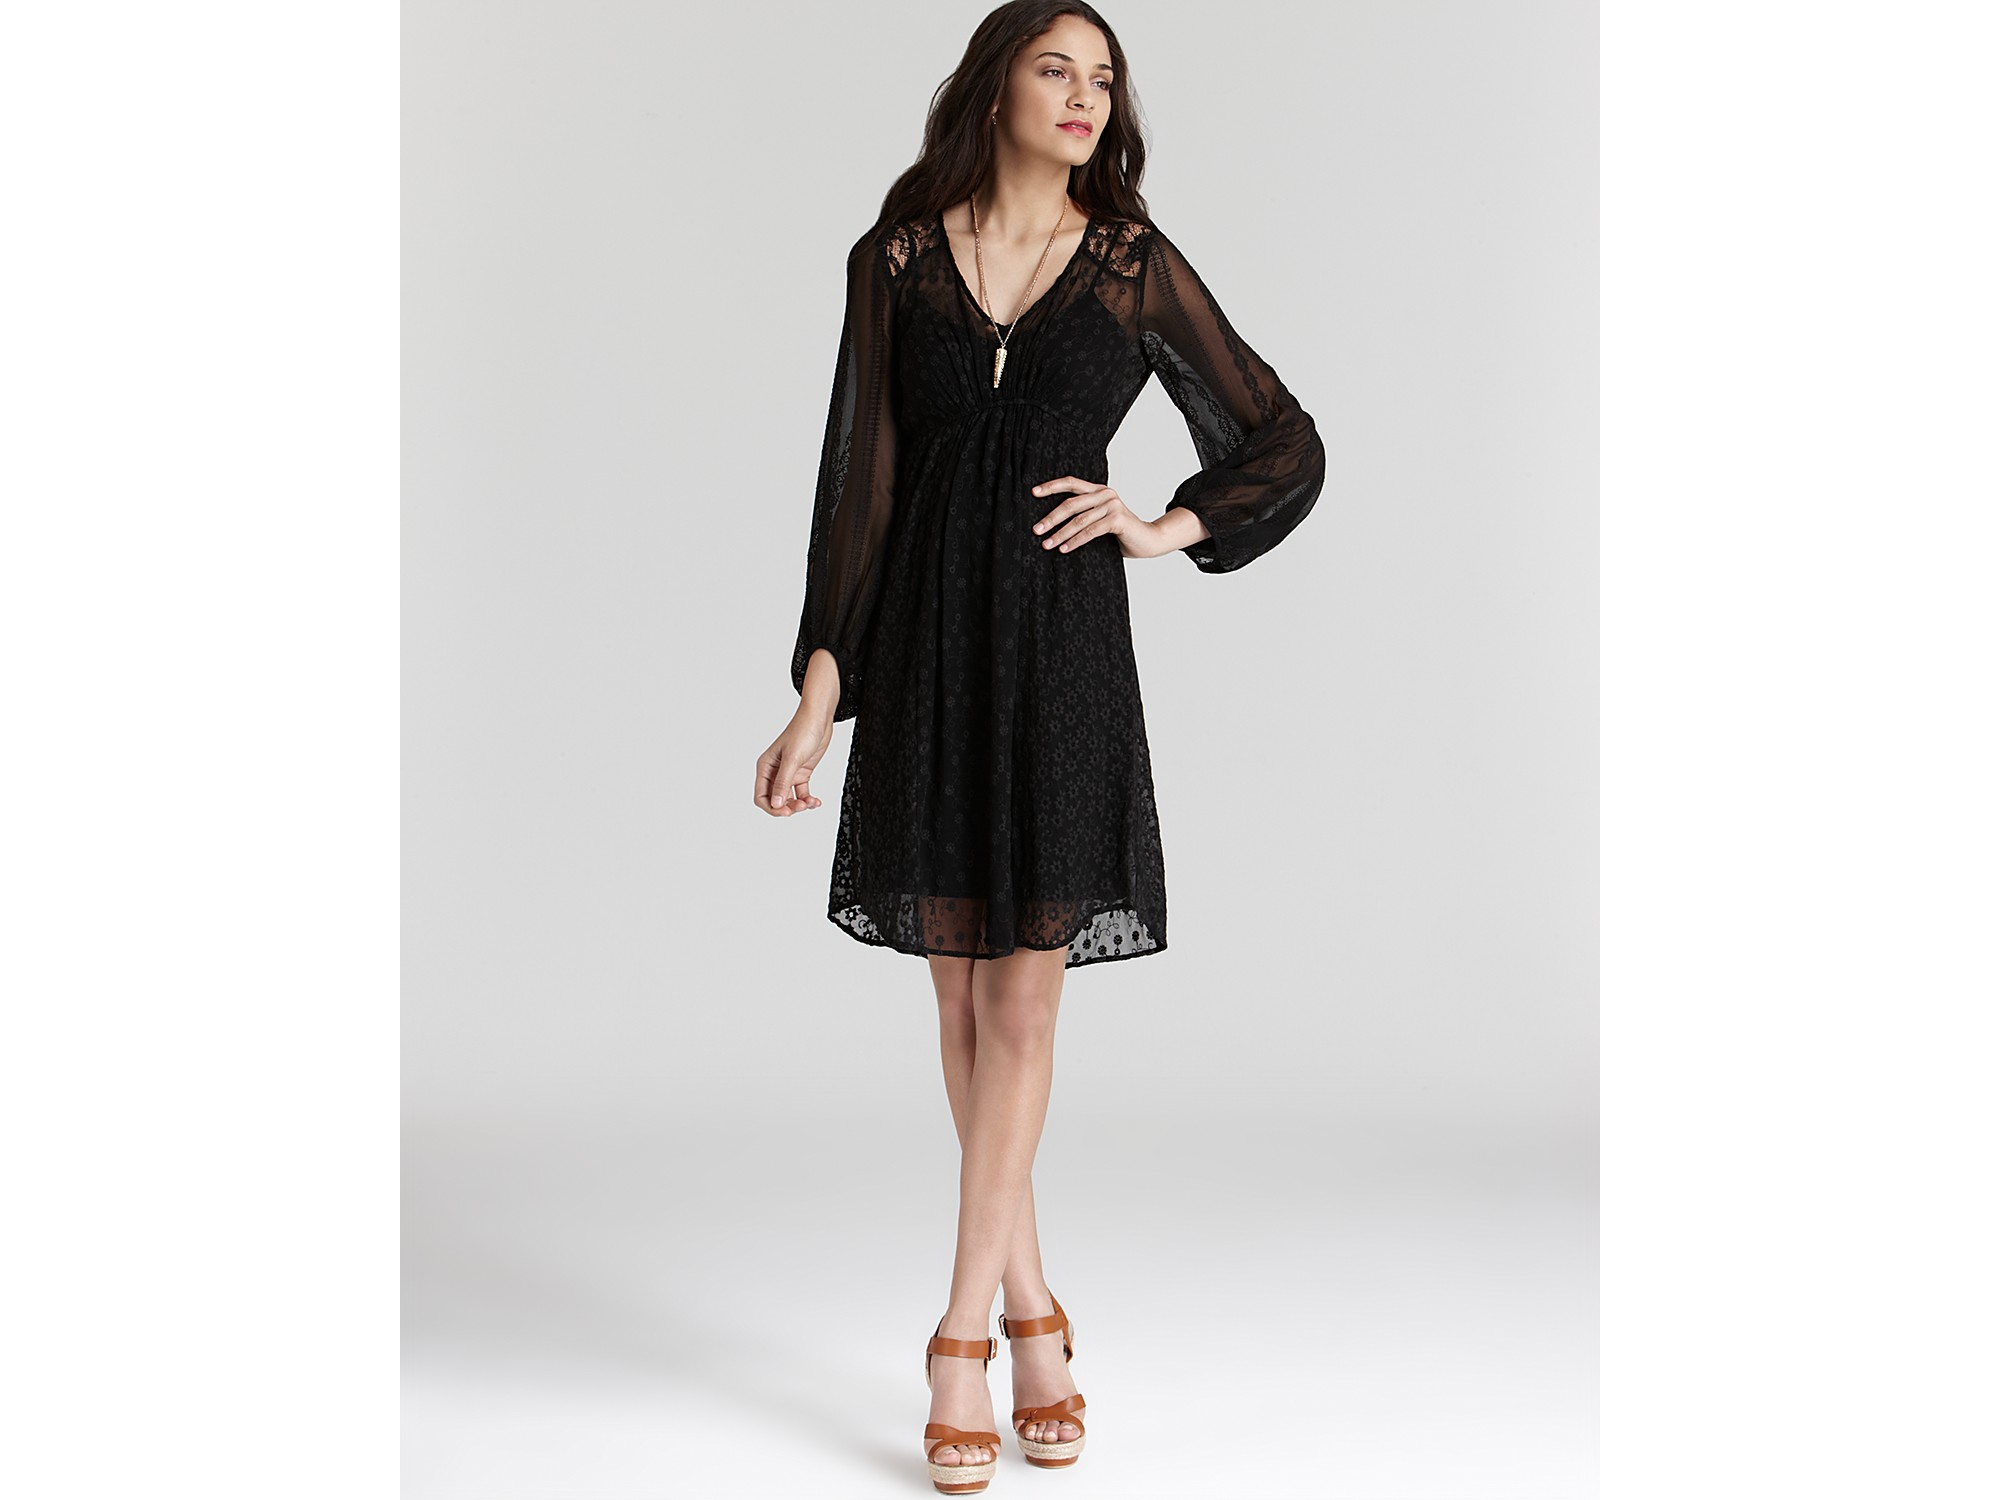 Ella moss black lace dress